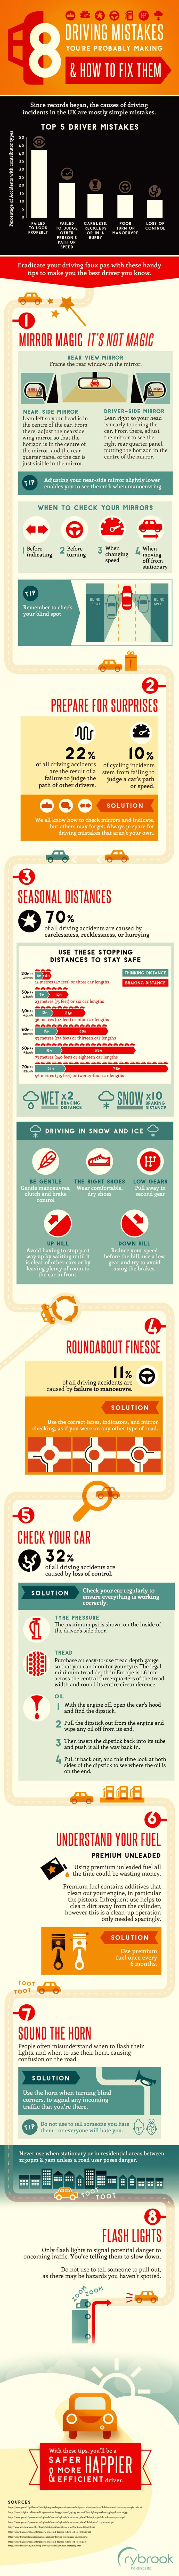 8 Driving Mistakes #Infographic #Driving #RoadSafety